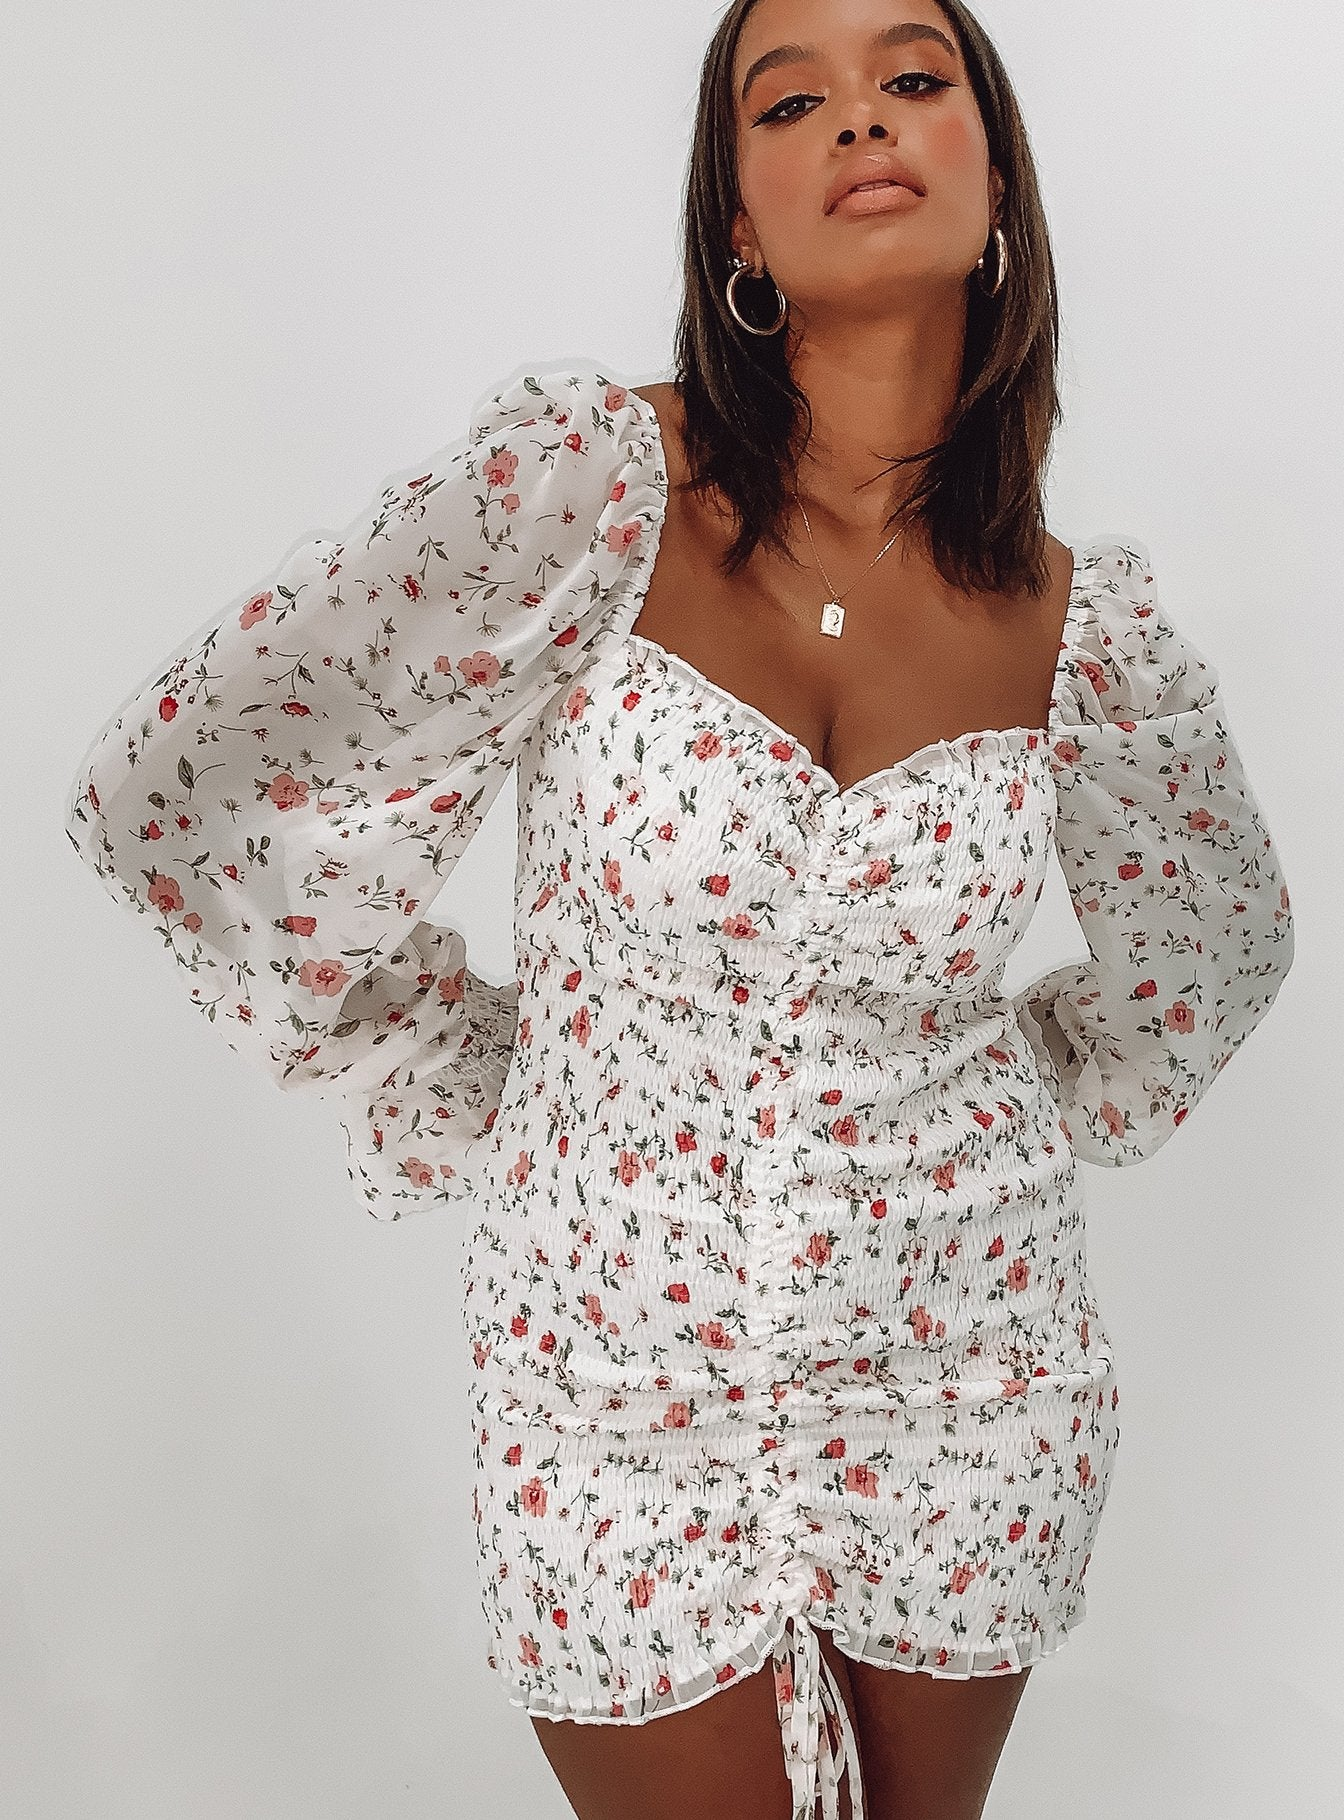 Wild Flowers Mini Dress White